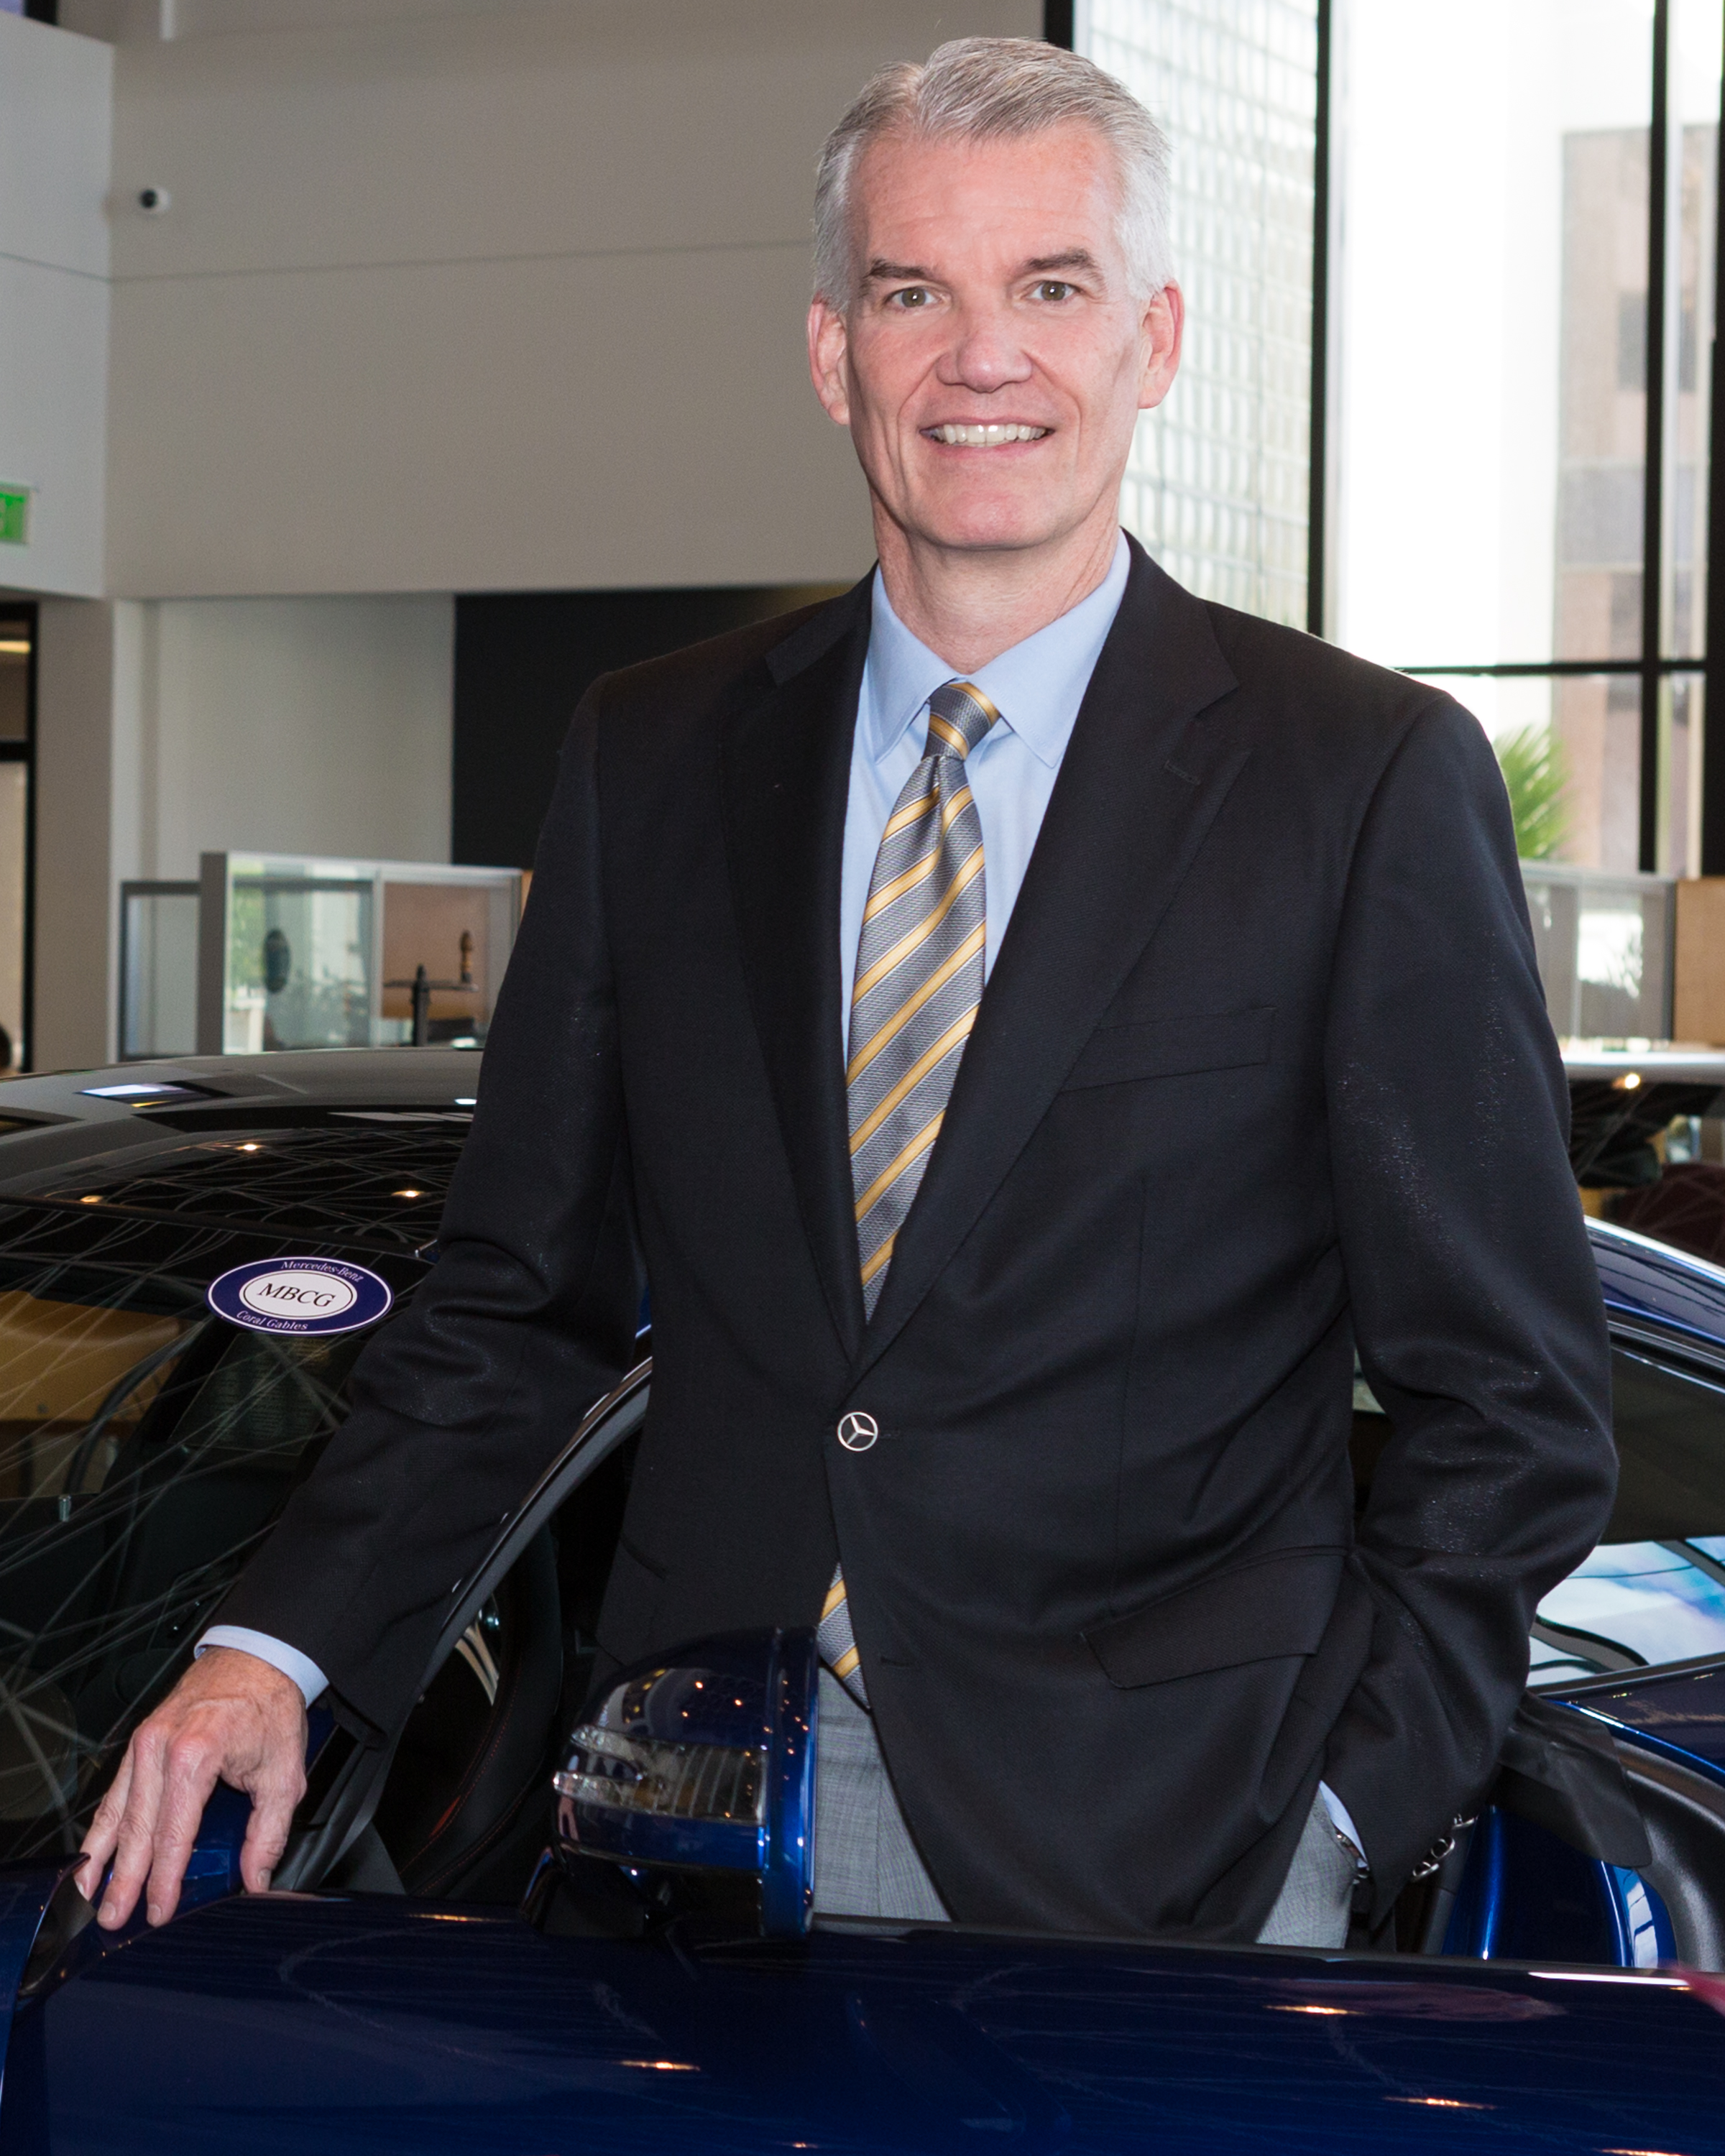 Bill Ussery Motors President, Greg Barnes, is interviewed by Automotive News